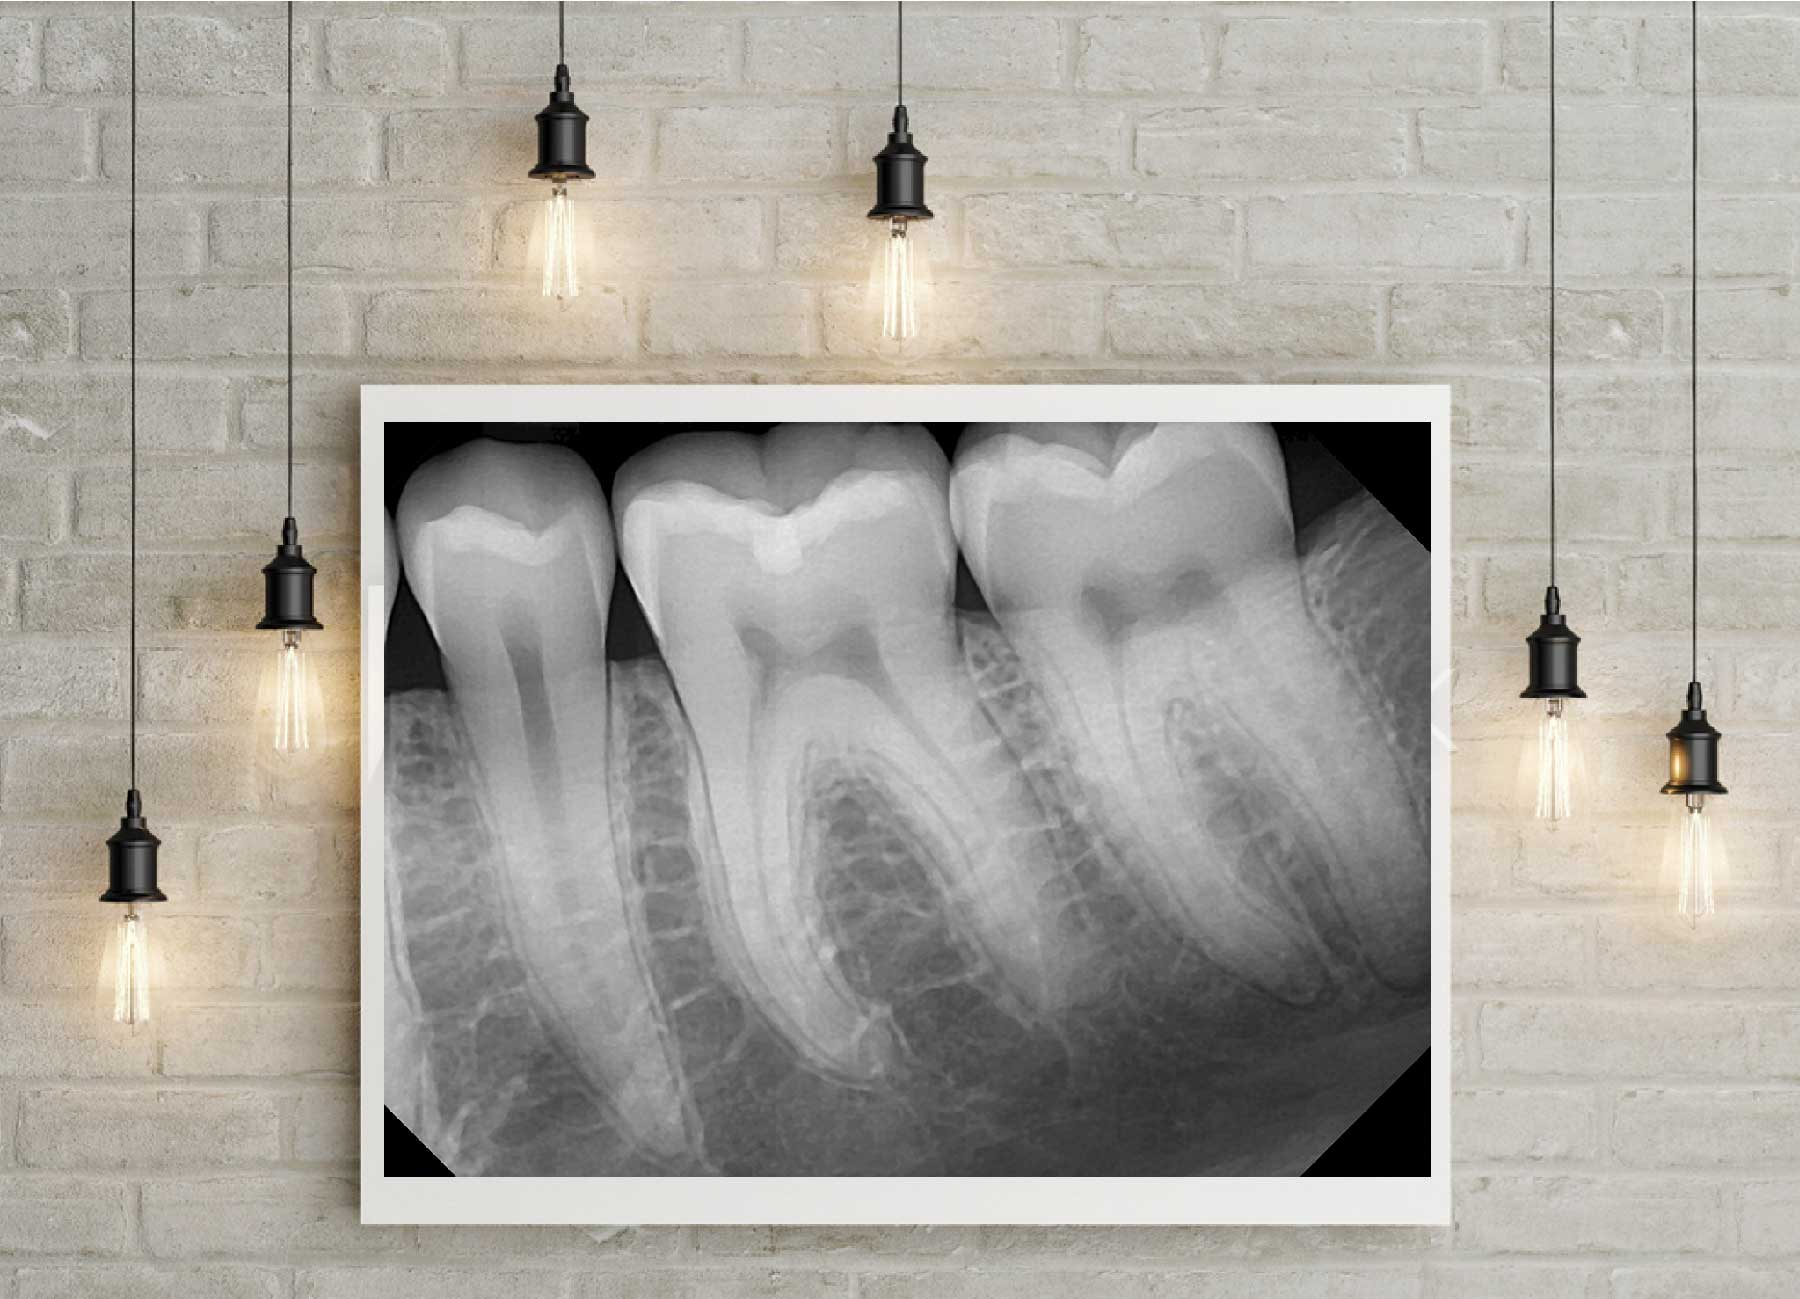 Image about digital dental x-rays